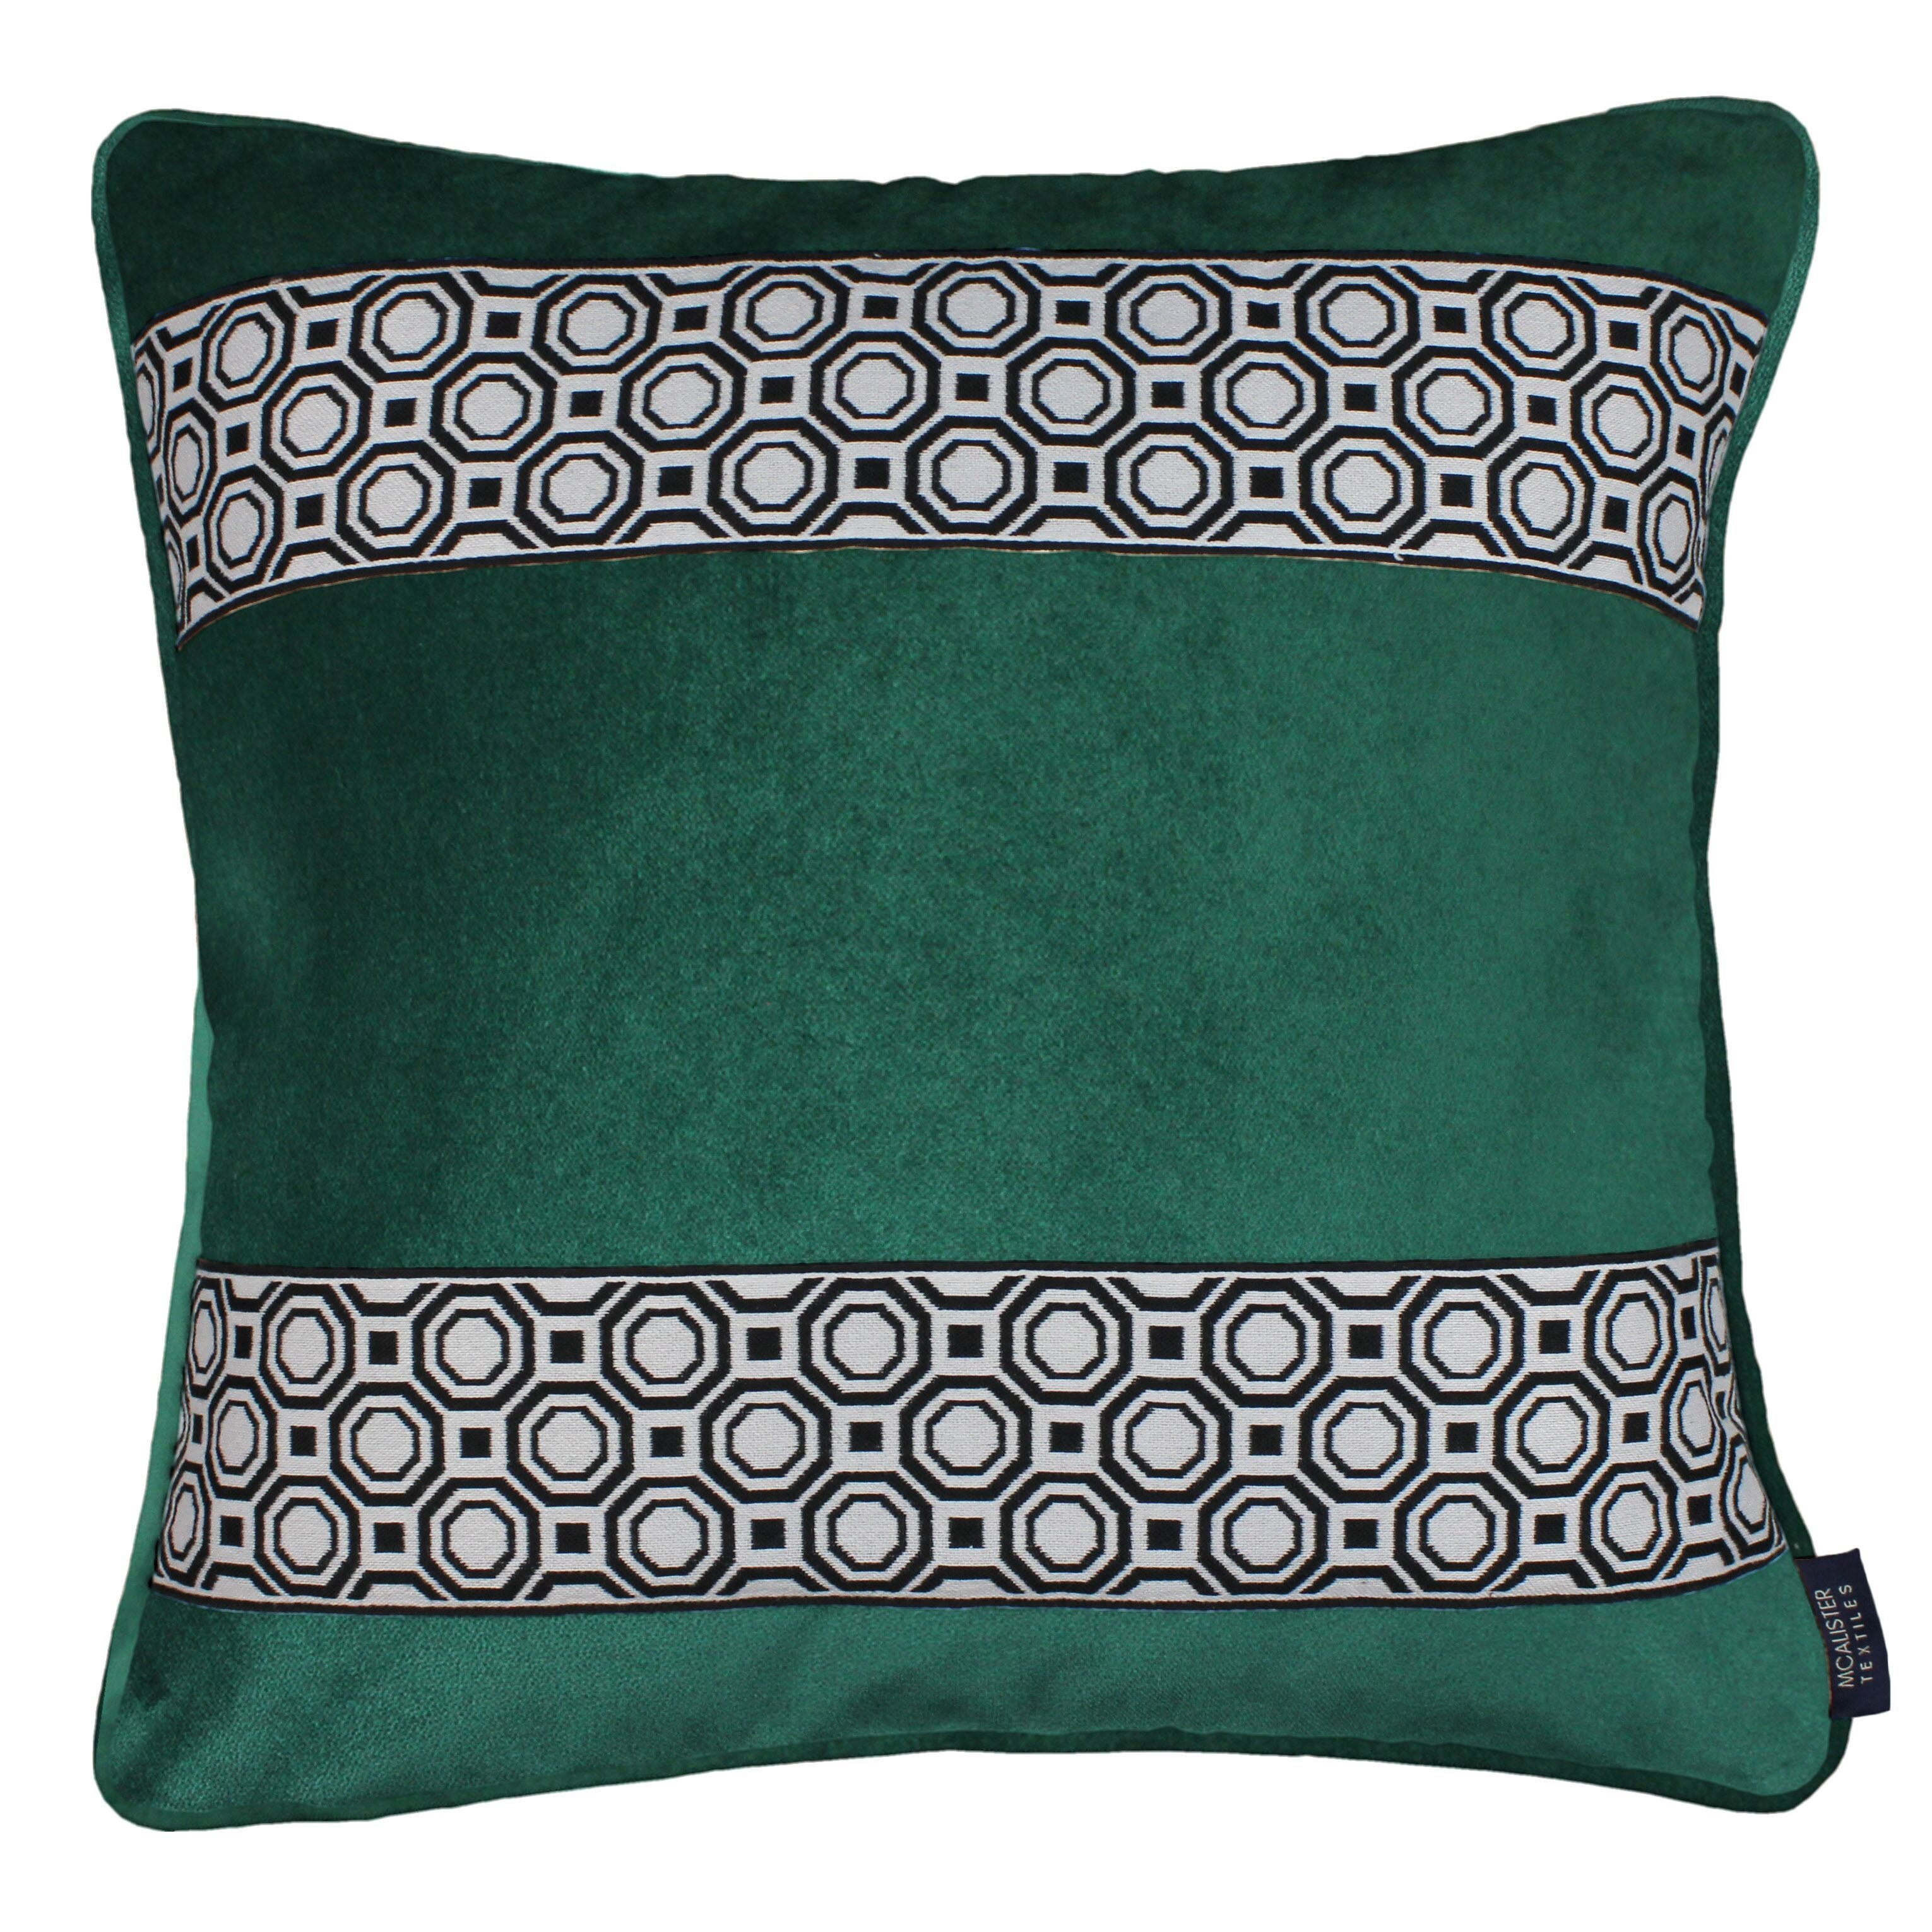 McAlister Textiles Cancun Striped Emerald Green Velvet Pillow Pillow Cover Only 43cm x 43cm